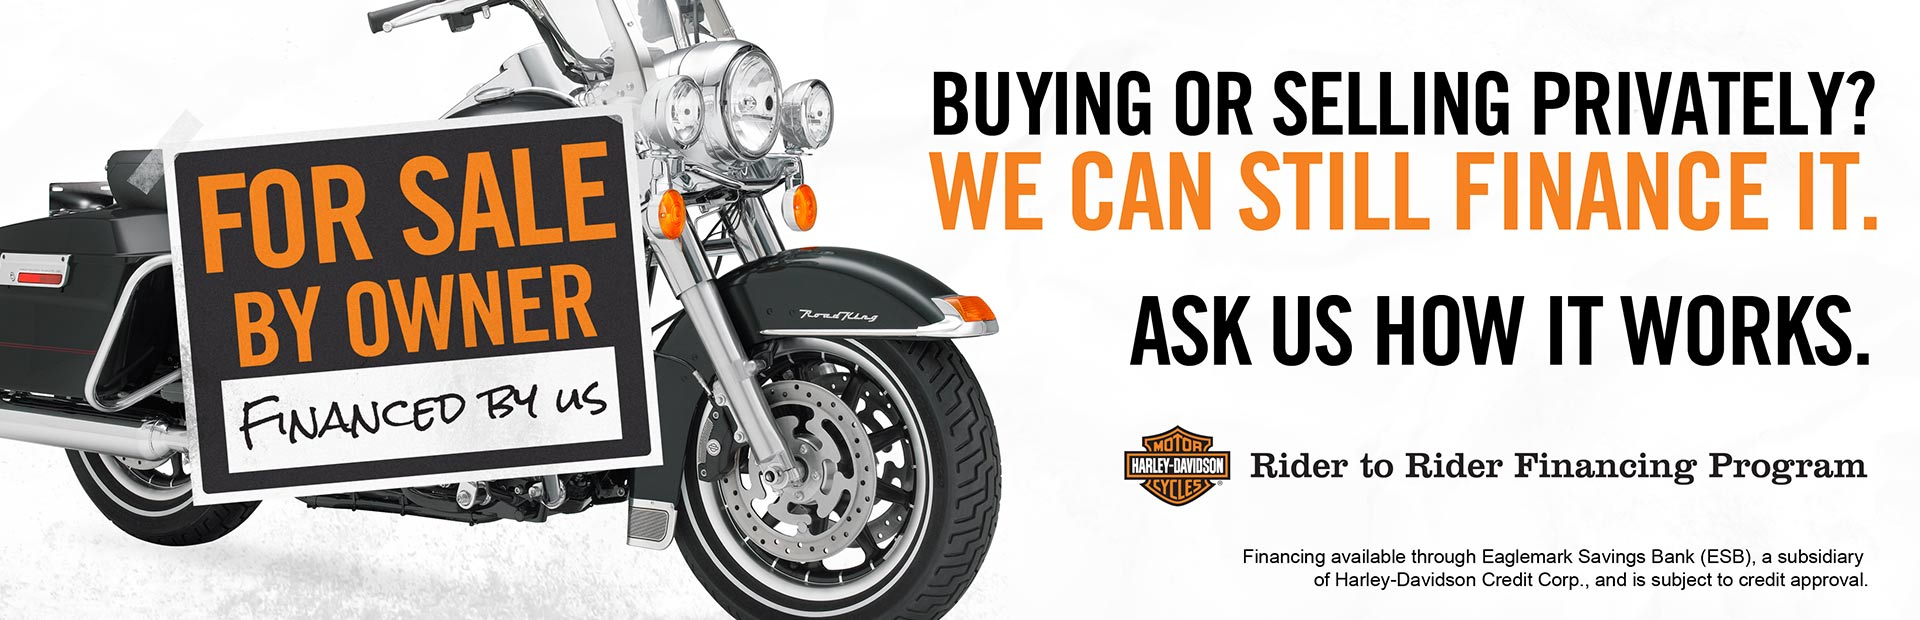 Home Low Country Harley Davidson Charleston Sc 843 554 1847 Heritage Softail Clic Https Com Us En Owners Financing And Insurance Private Party Financinghtml